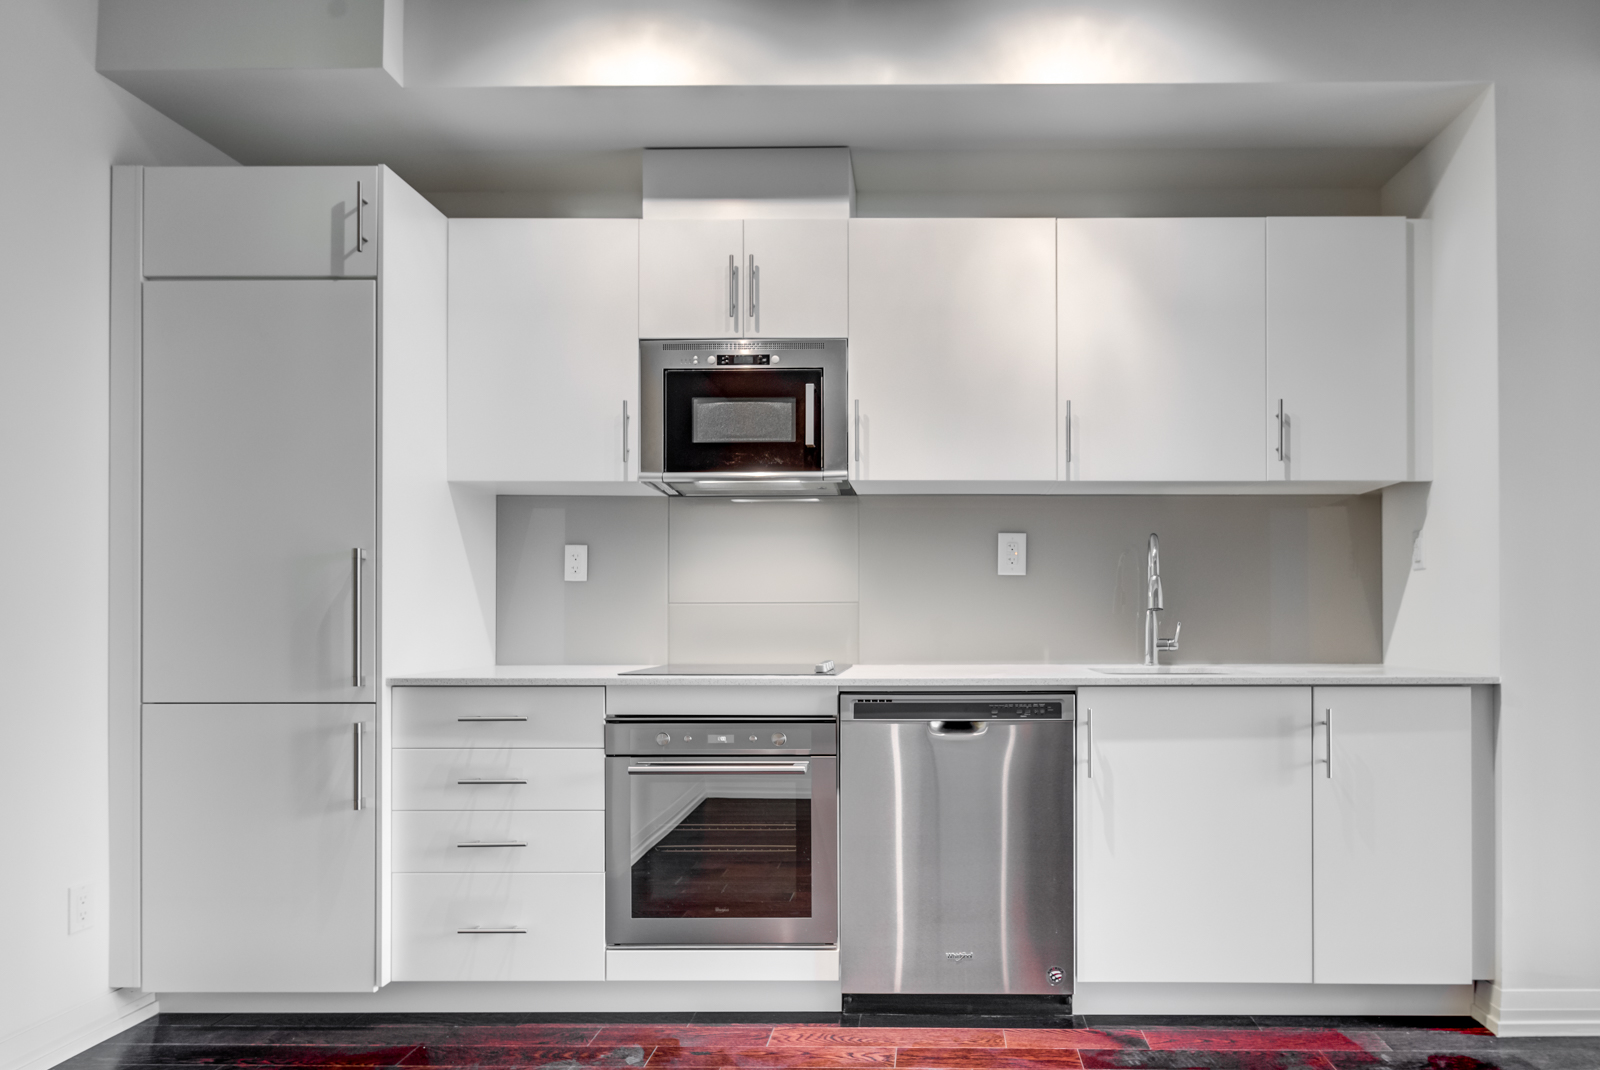 Unit 620 kitchen looking so beautiful and modern.